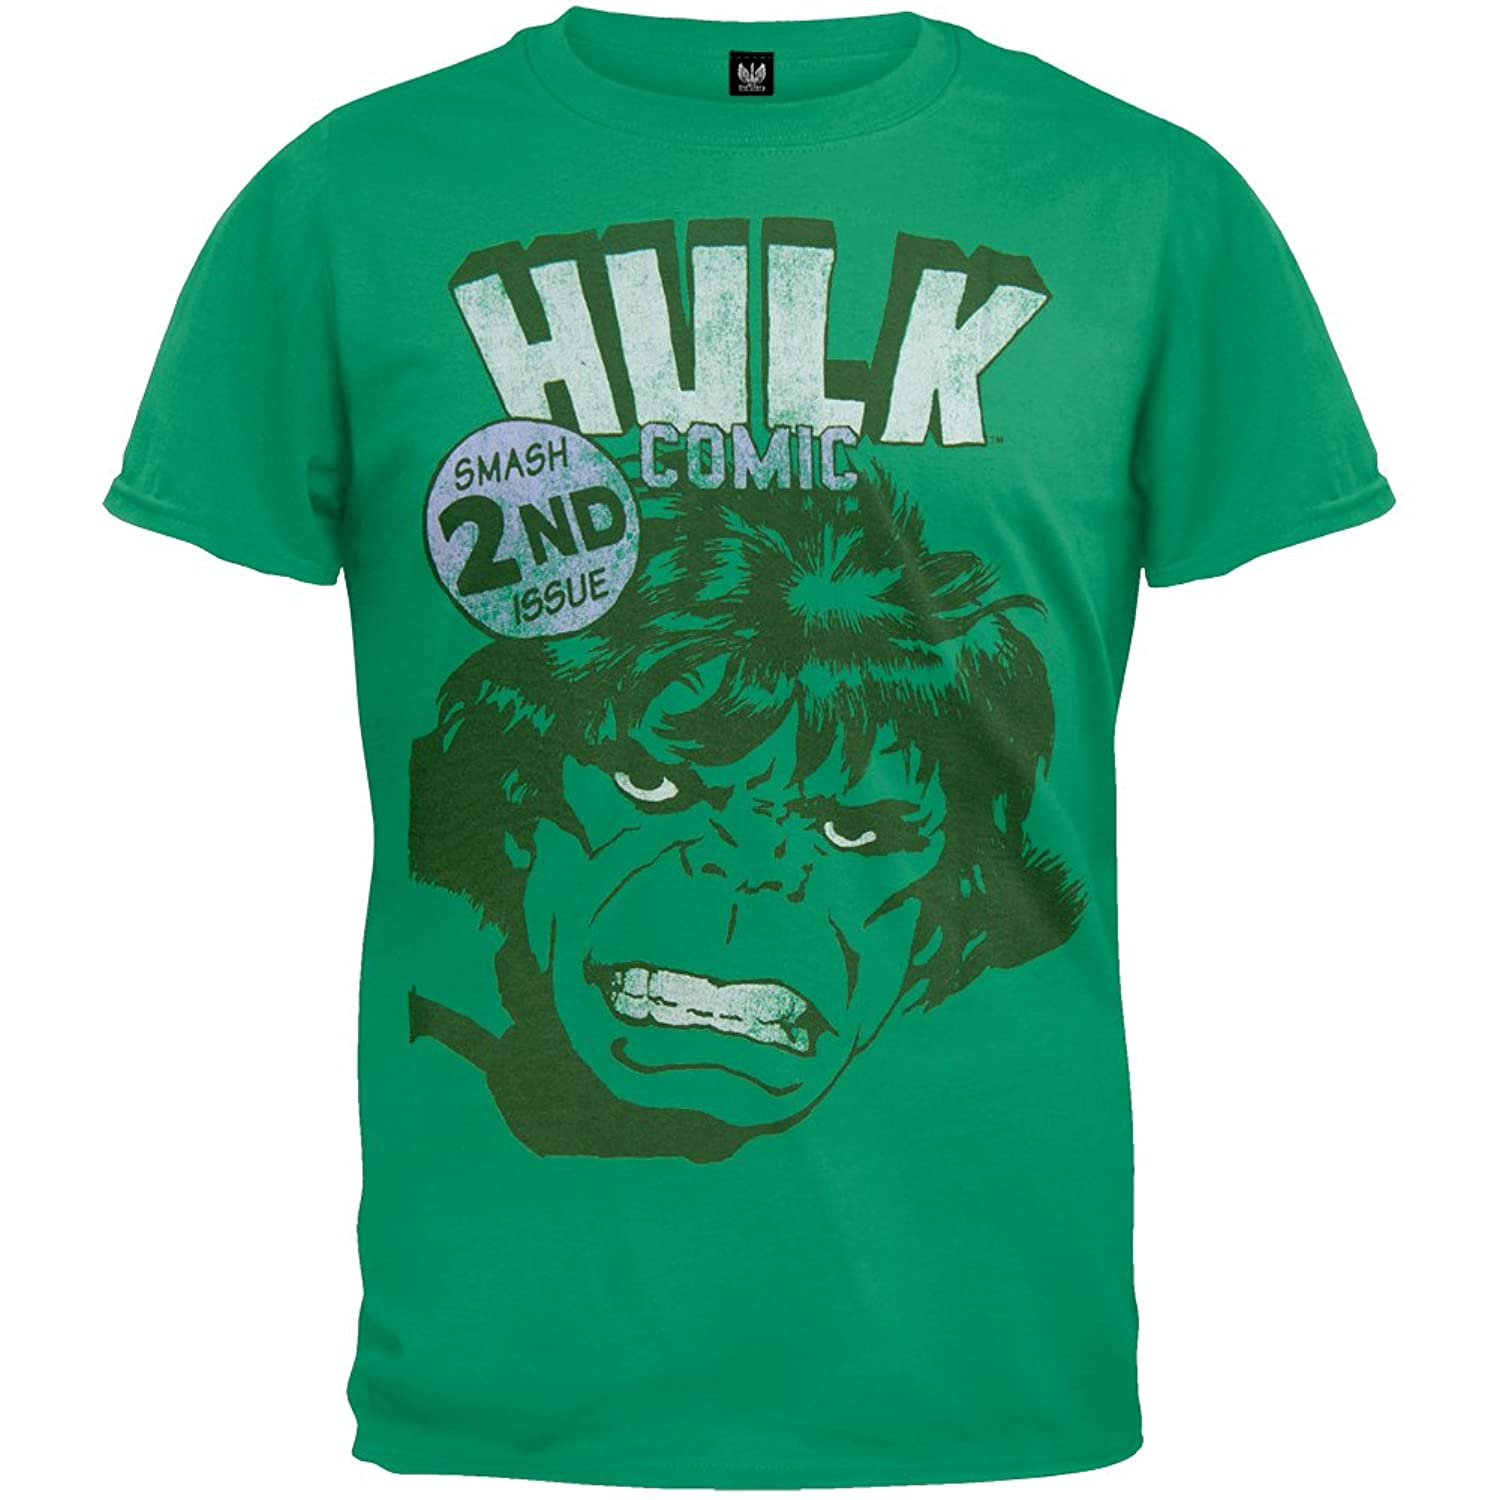 Incredible Hulk - Smash 2nd Issue Soft T-Shirt hulk